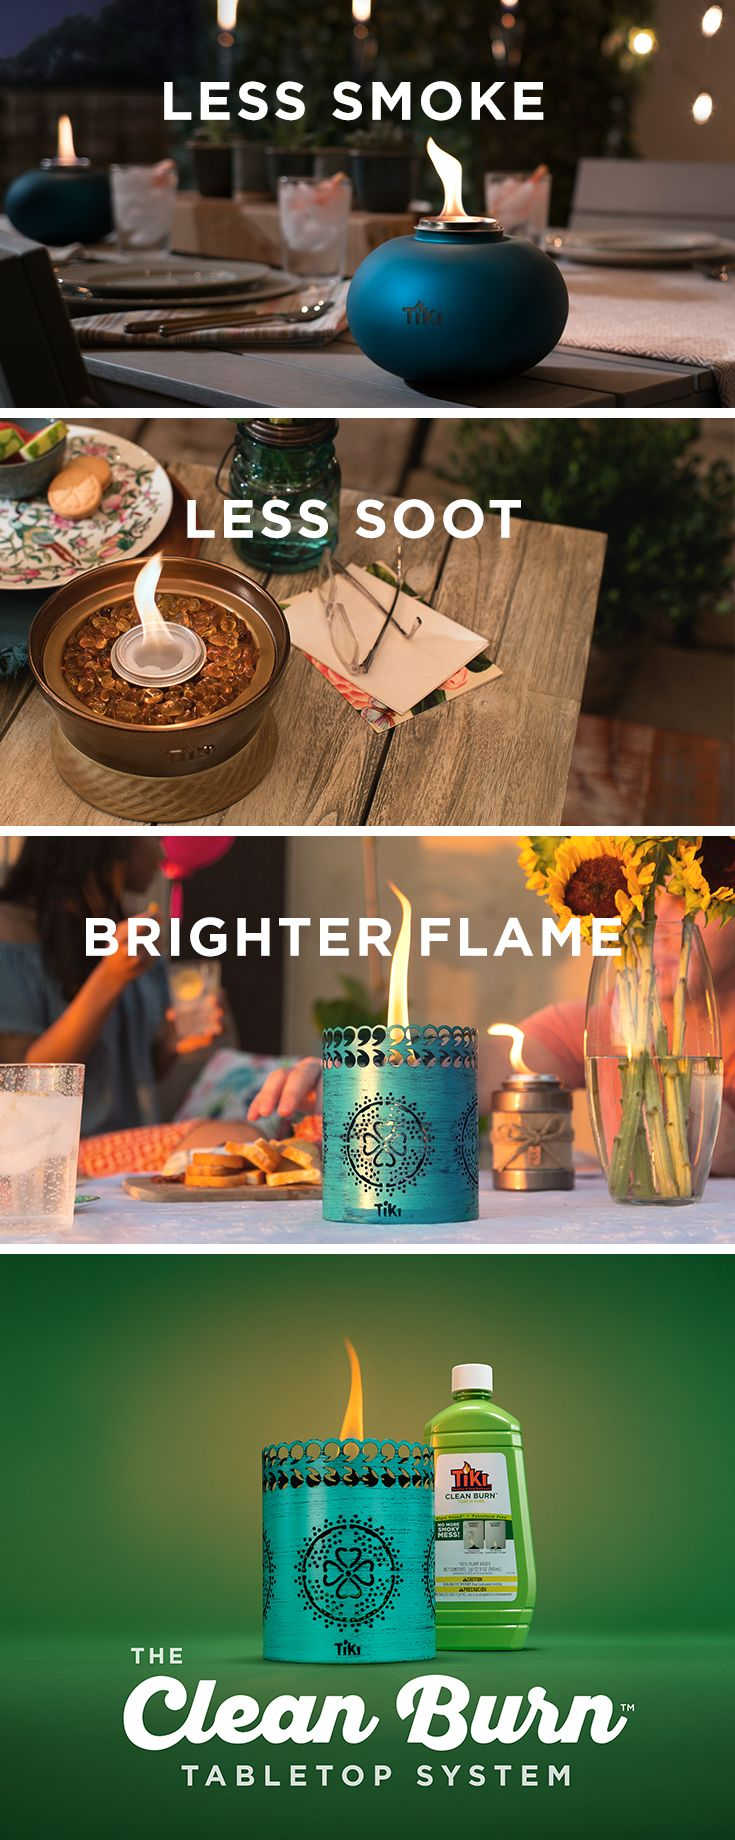 Get $5 off the Clean Burn Tabletop System. Less smoke. Less soot. A brighter flame. It's fire now made for your tabletop. Get $5 off at tikibrand.com/promotions.